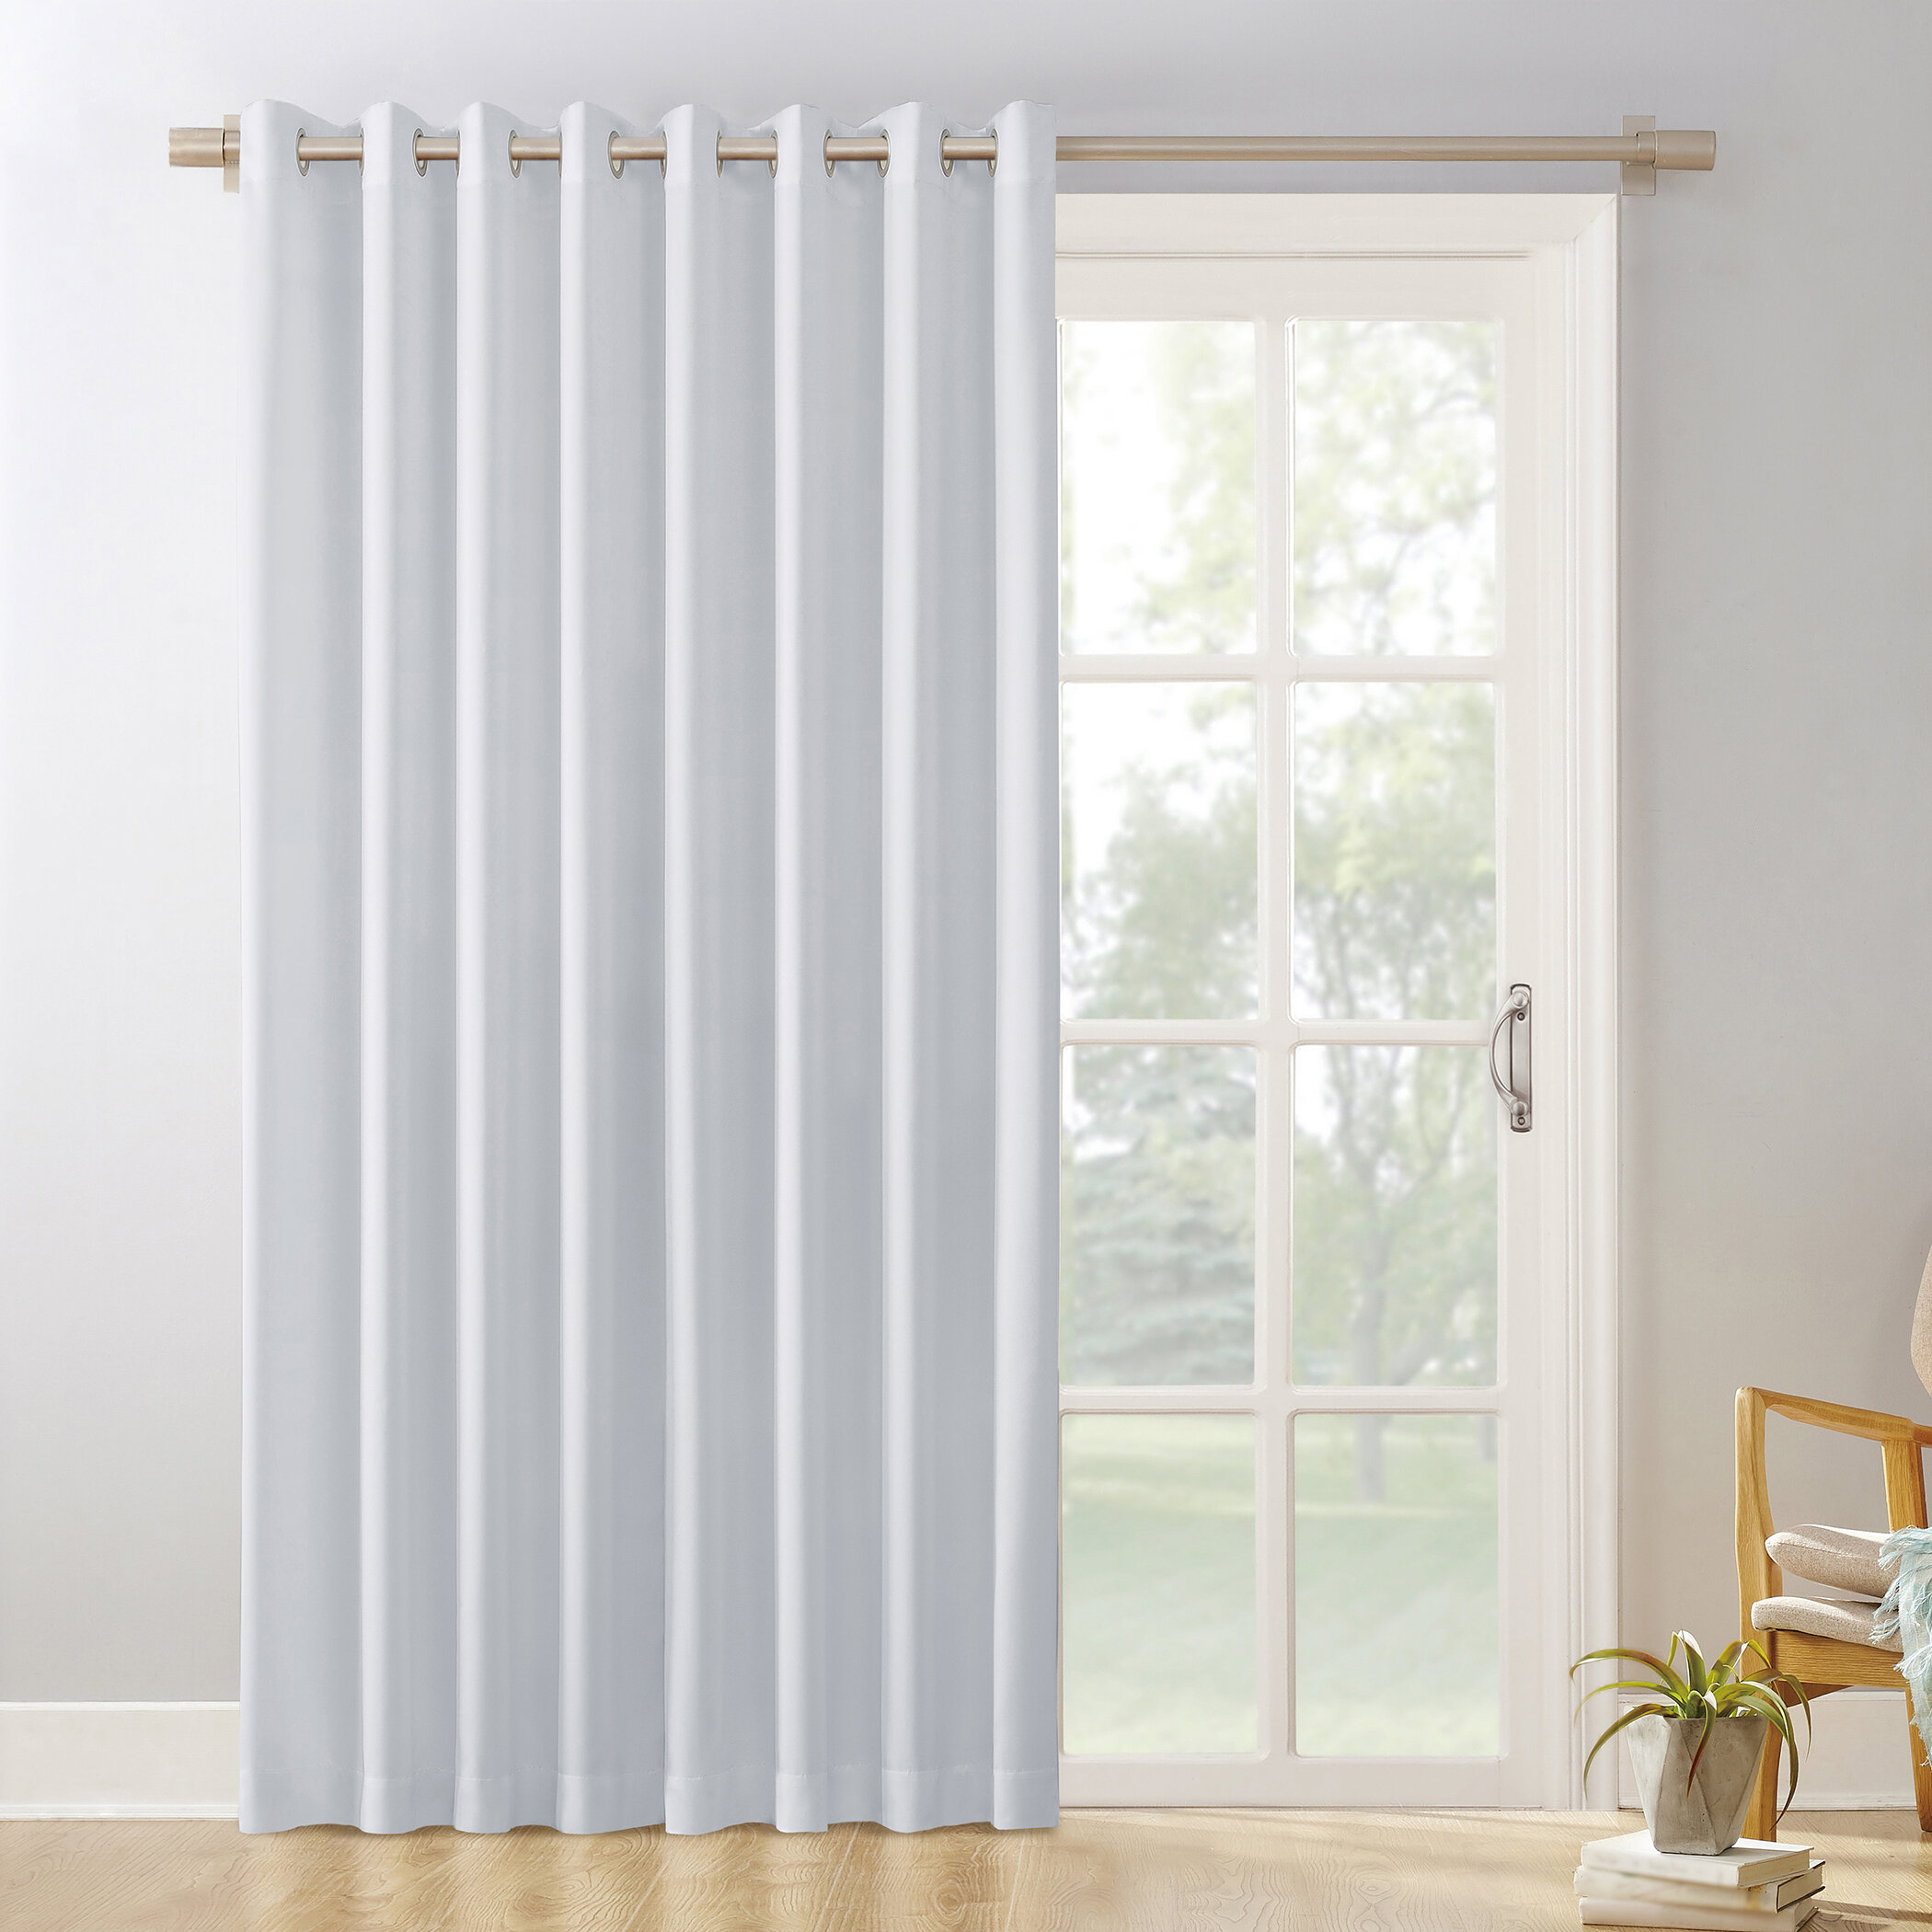 White Curtains Drapes Free Shipping Over 35 Wayfair